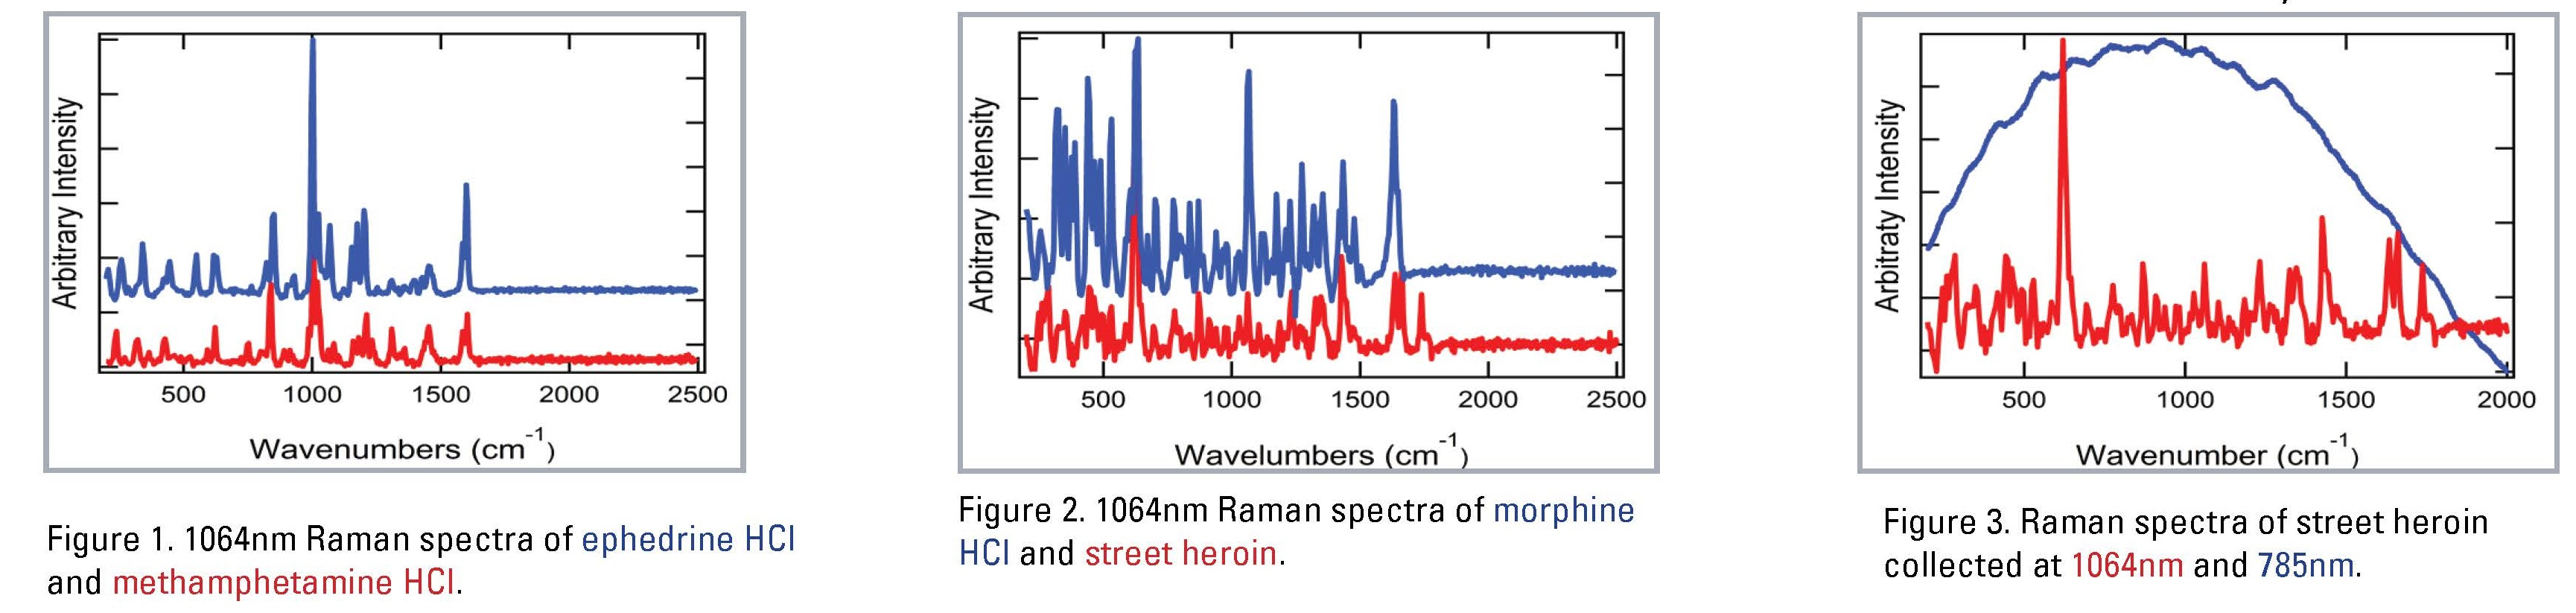 Narcotics Analysis Comparisons